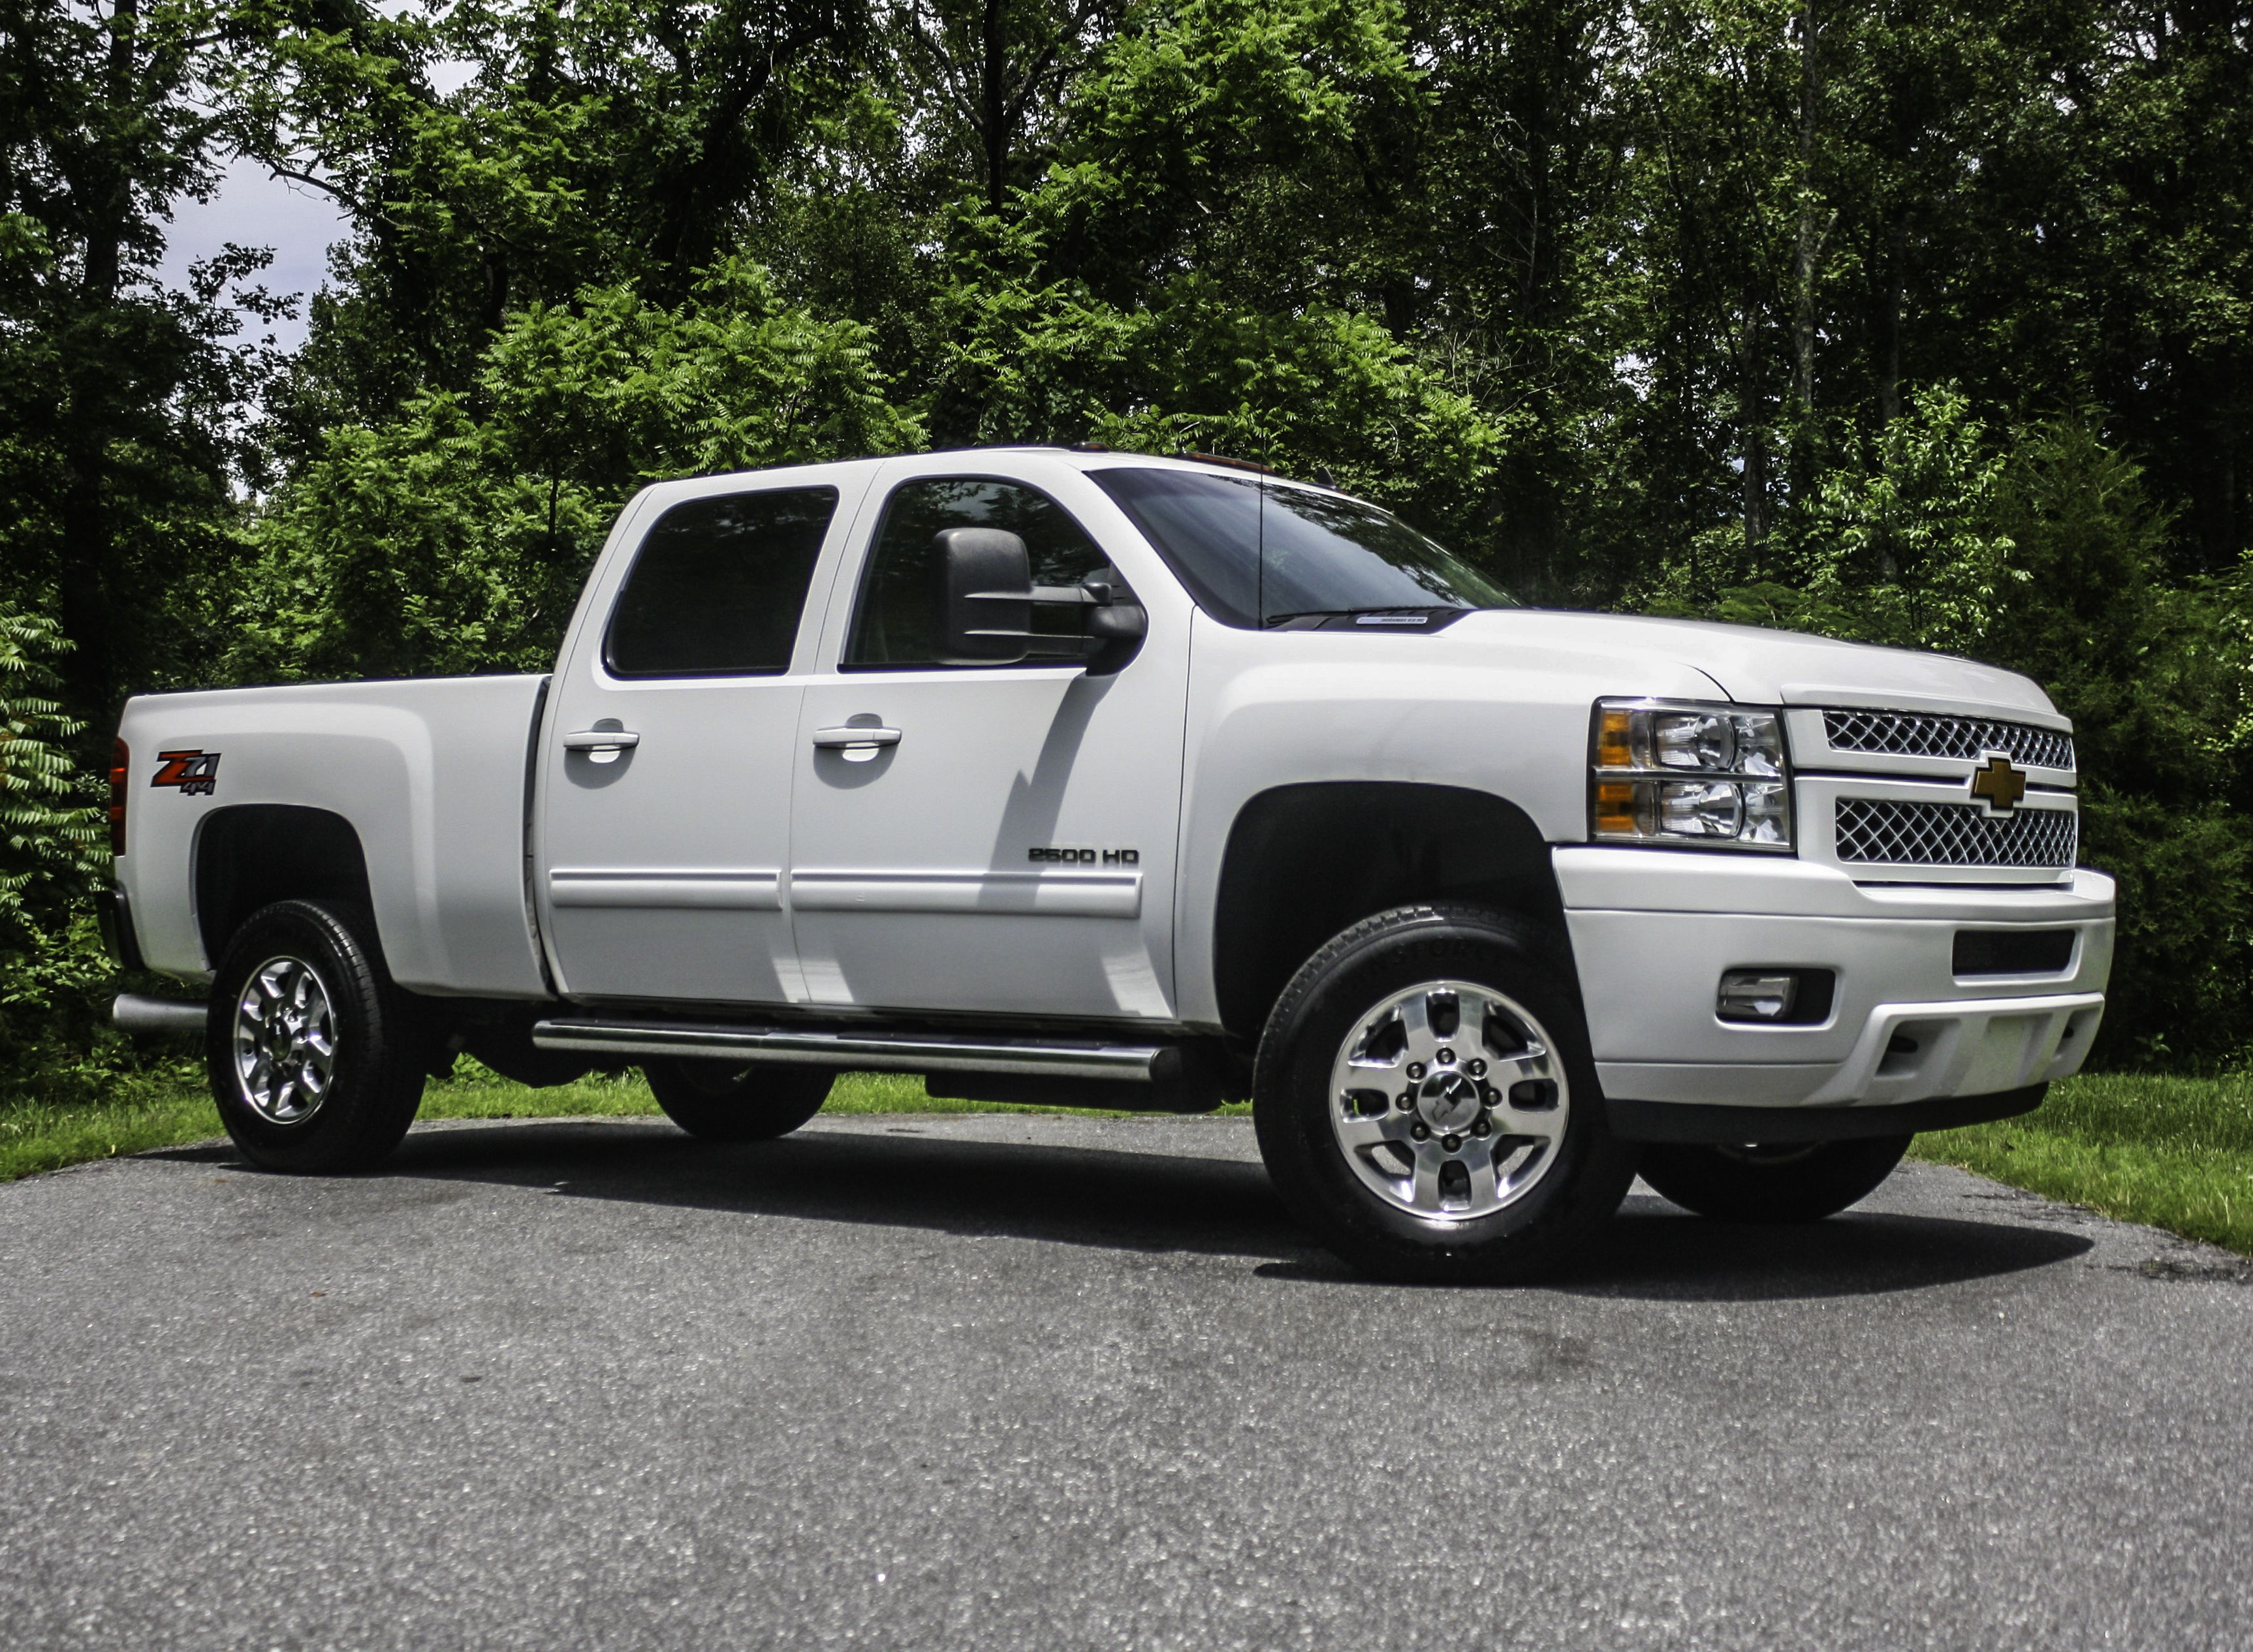 This 4x4 Has An Ltz Package Z71 Package 6 6l Duramax Engine Tow